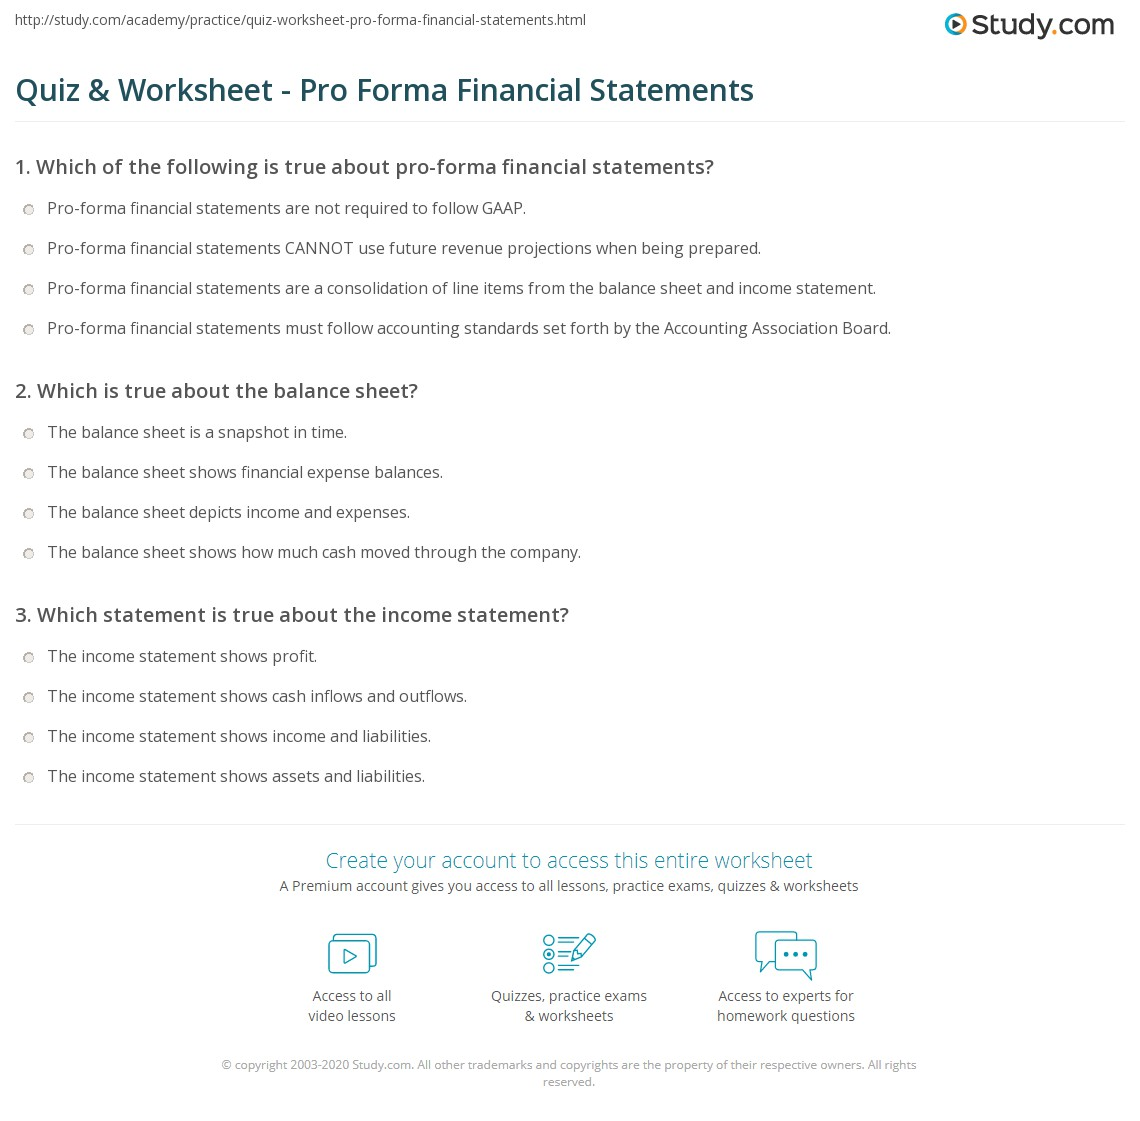 quiz worksheet pro forma financial statements study com